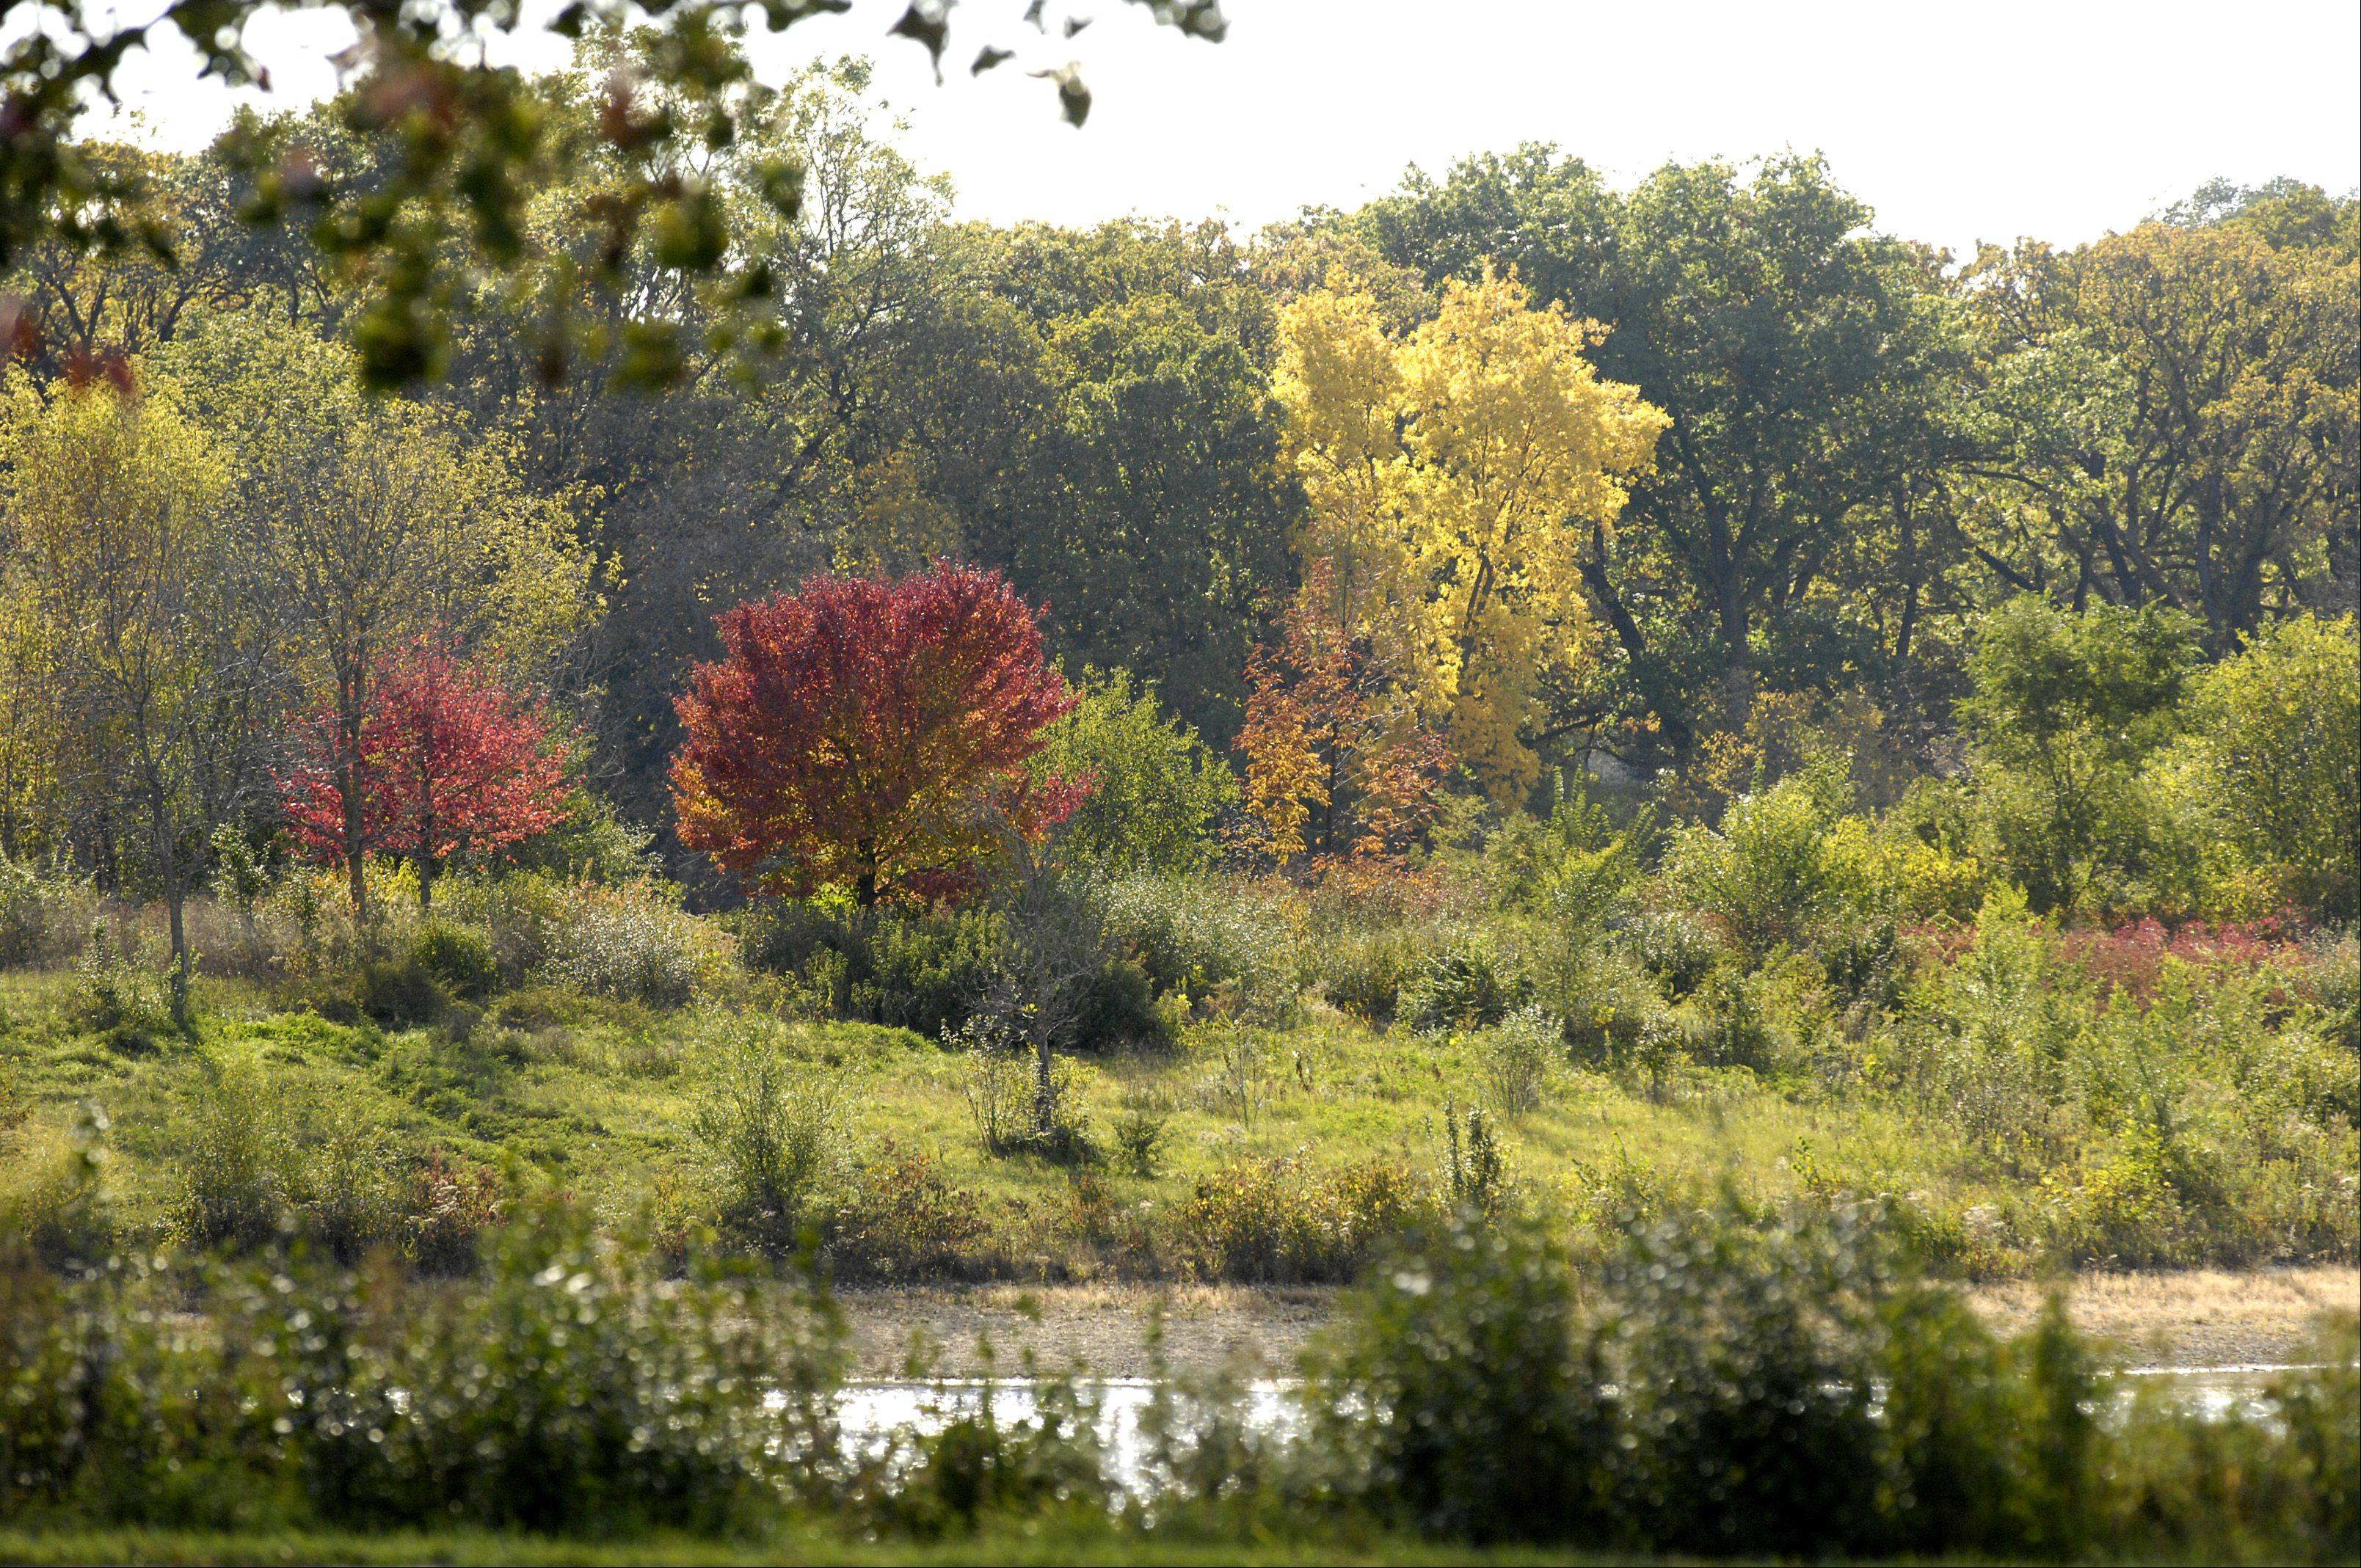 Trees in the Blackwell Forest Preserve are starting to turn color.